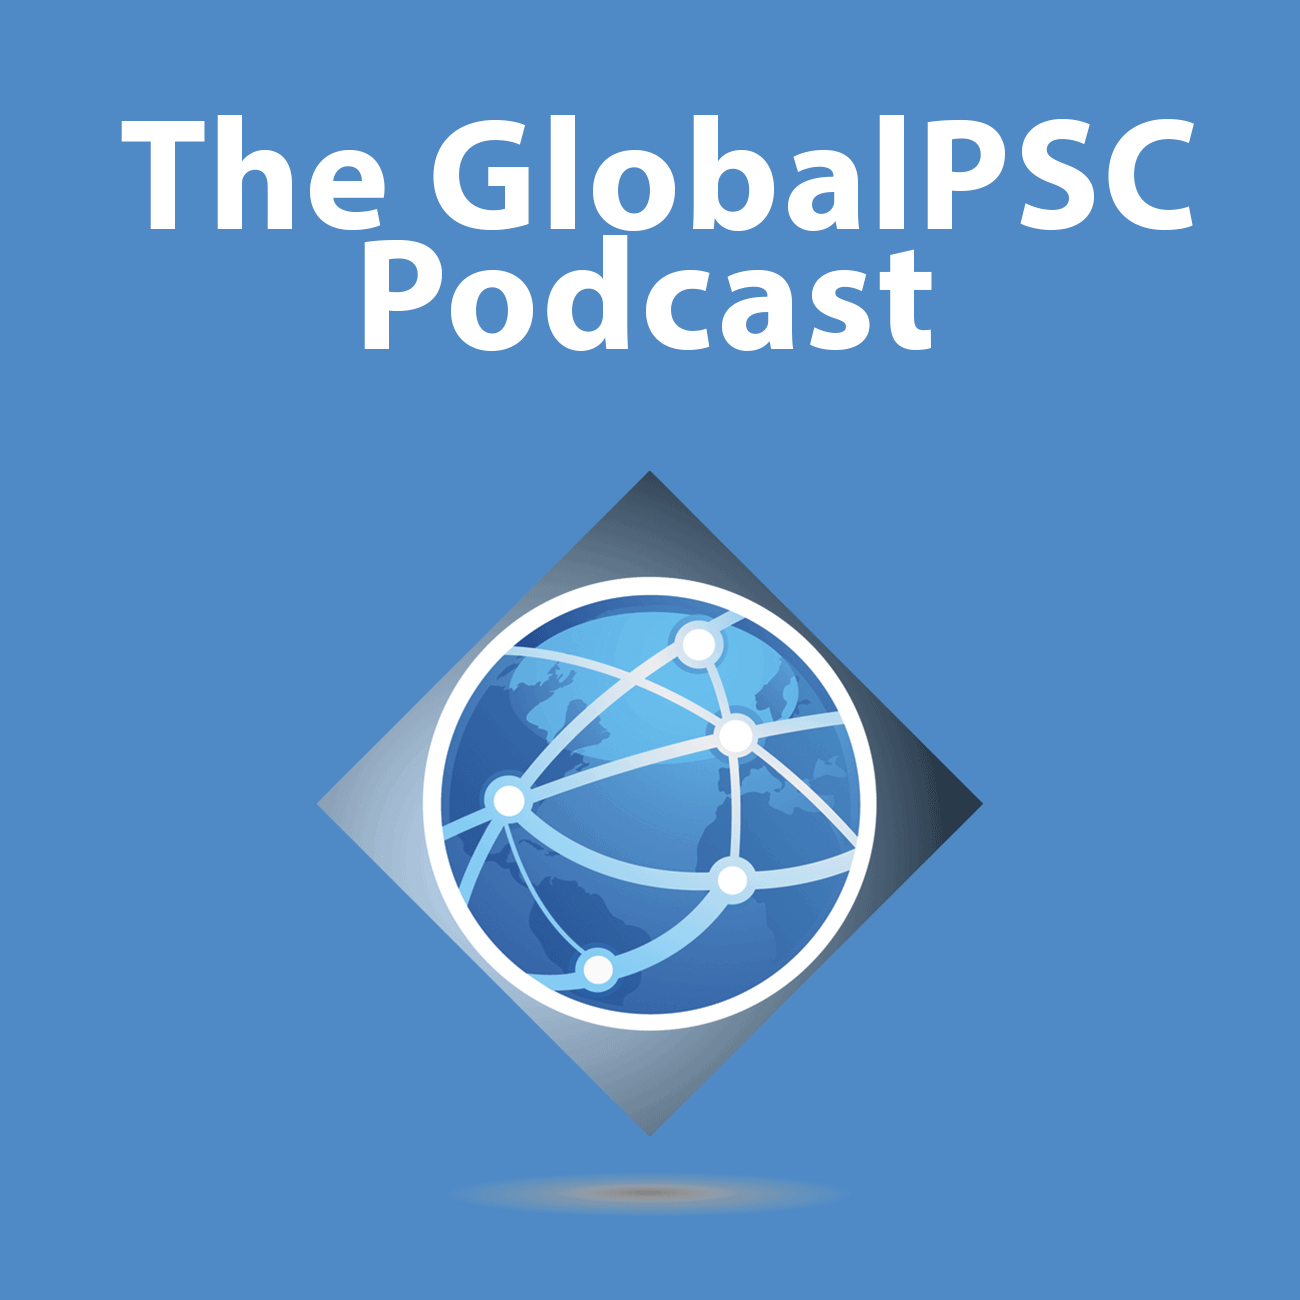 The GlobalPSC Podcast